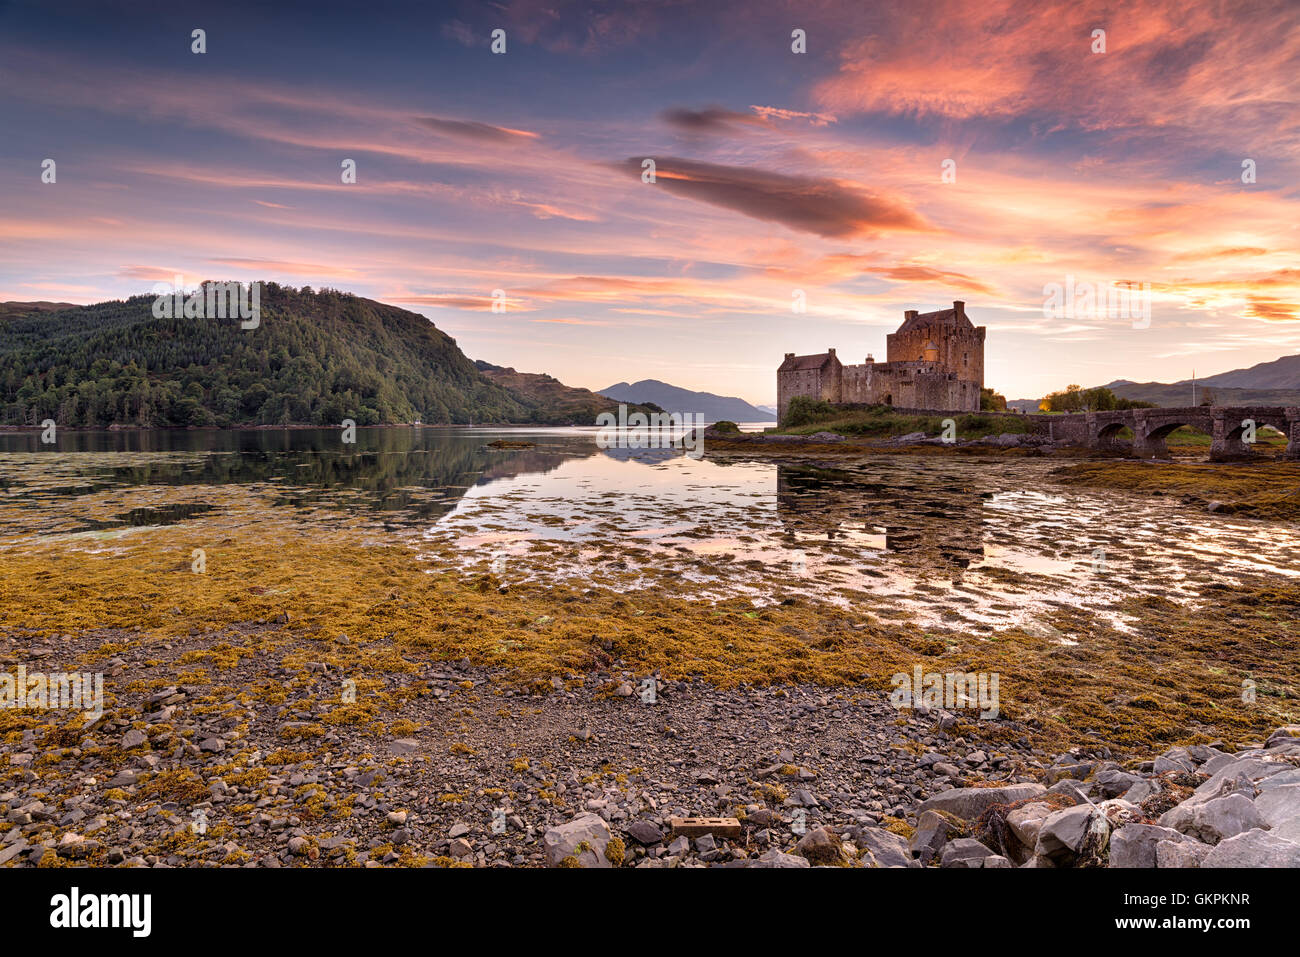 Stunning evening sky over Eilean Donan castle on the western coast of the Scottsih highlands - Stock Image